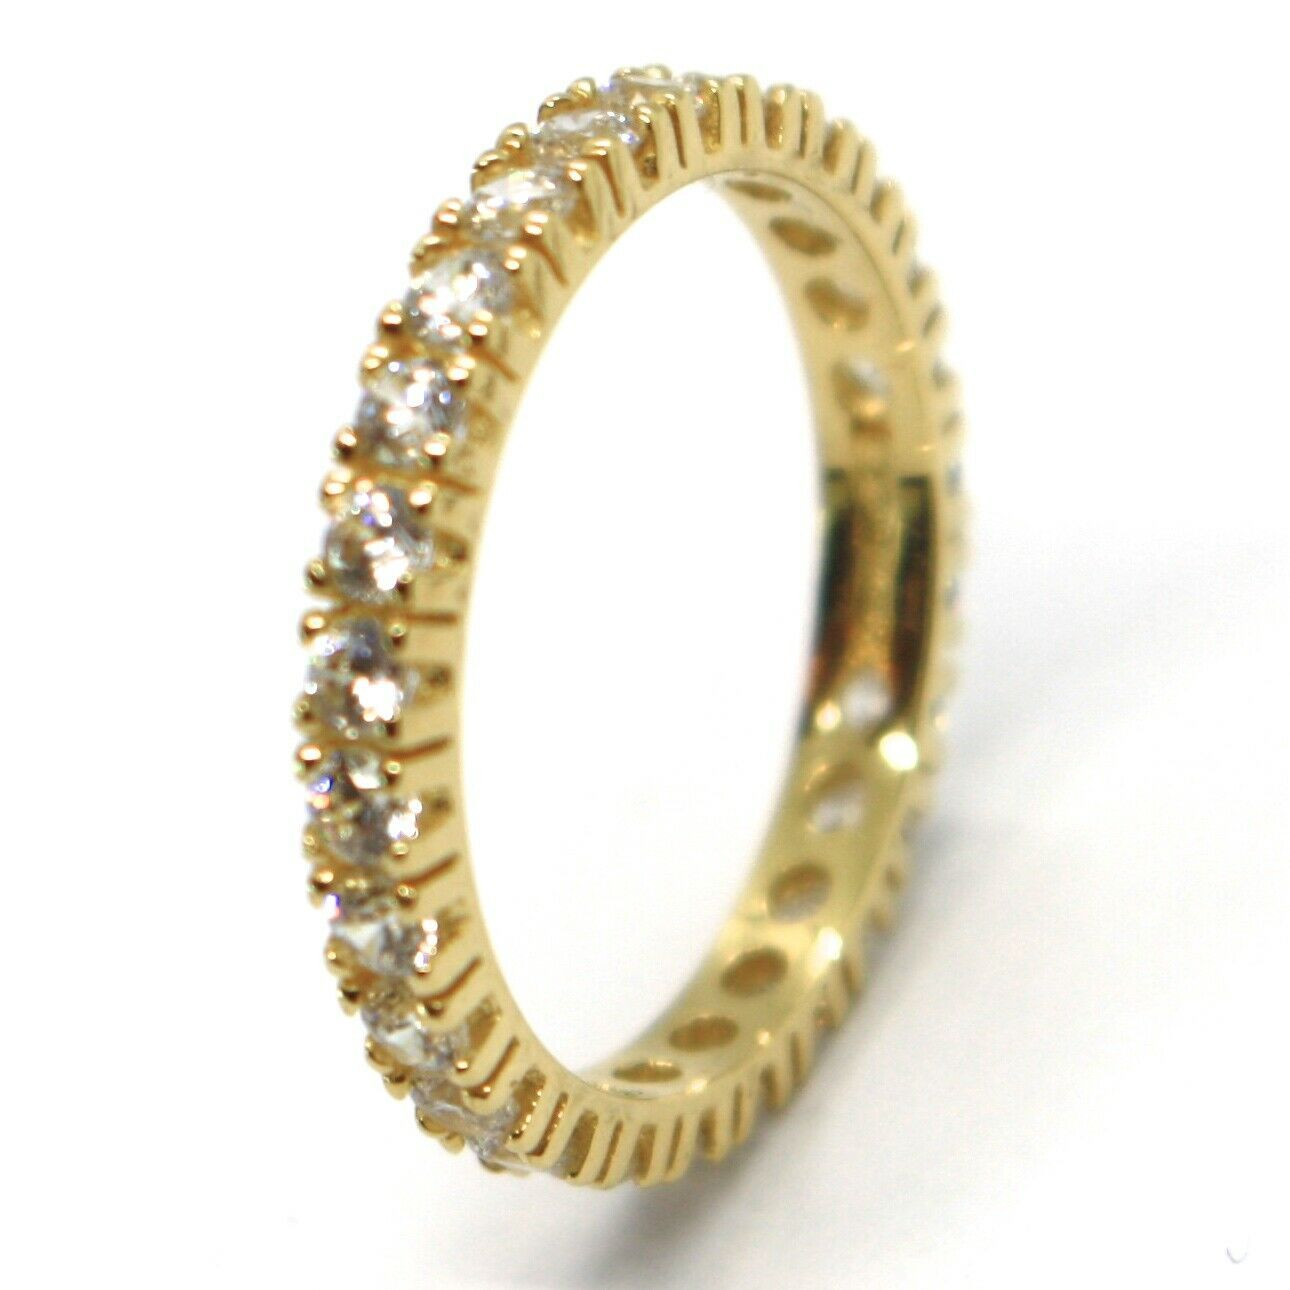 18K YELLOW GOLD ETERNITY BAND RING, WHITE CUBIC ZIRCONIA, THICKNESS 3 MM